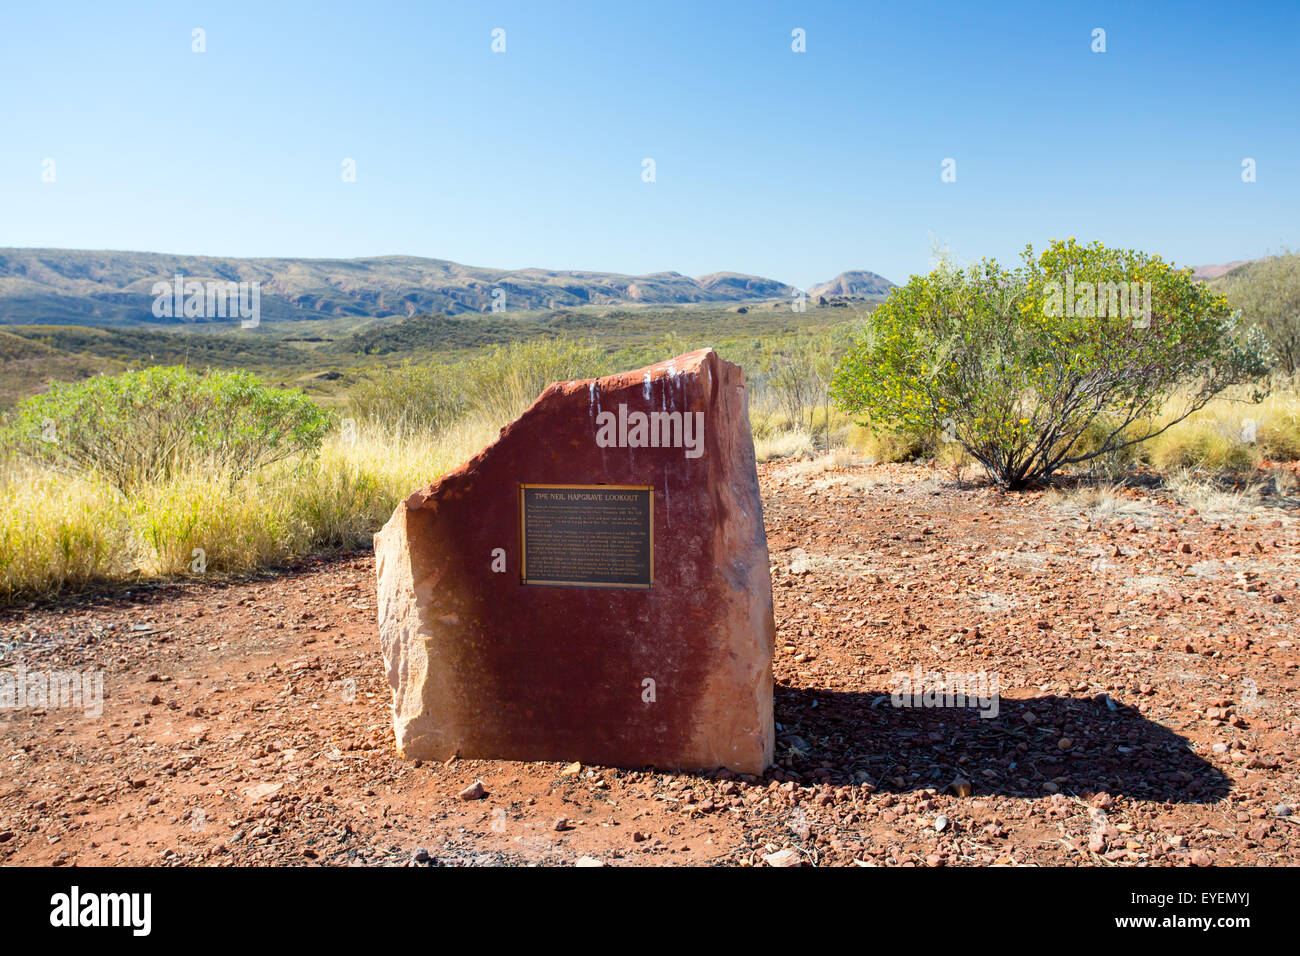 A view across the West Macdonnell Ranges at Neil Hargrave Lookout near Alice Springs, Northern Territory, Australia - Stock Image